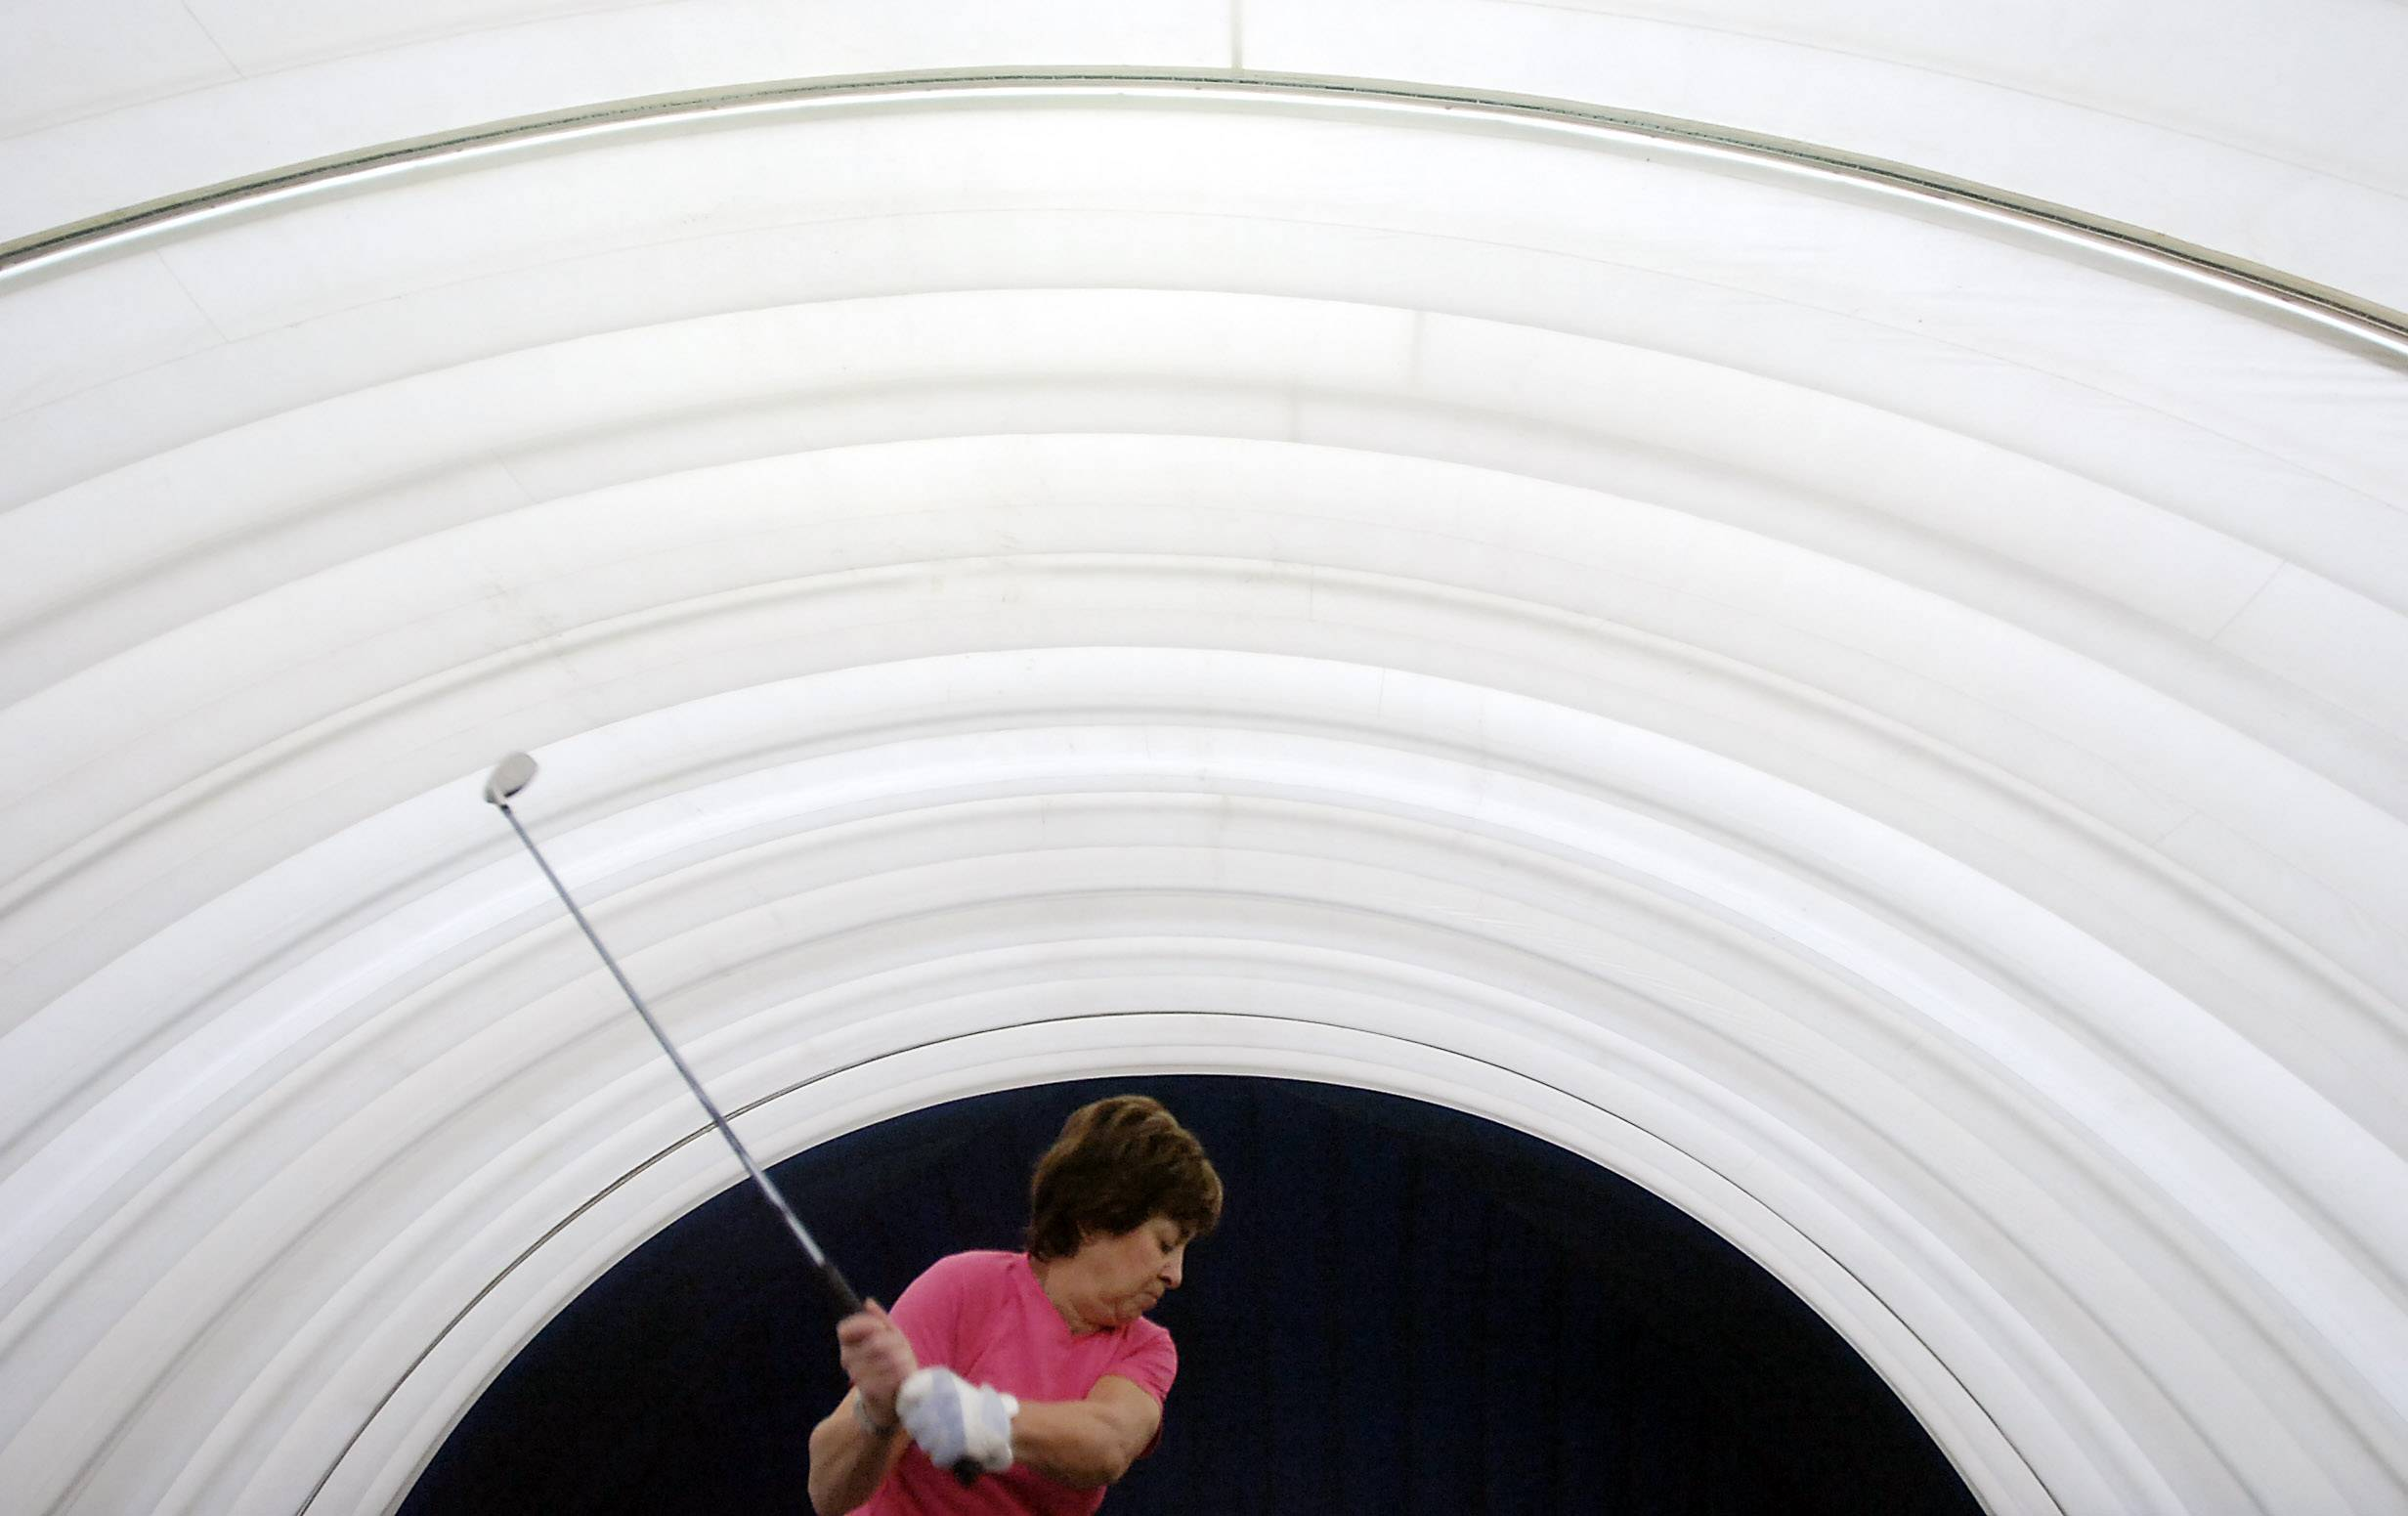 MARK WELSH/mwelsh@dailyherald.com, 2009The Buffalo Grove Park District is planning major renovations for its 15-year-old golf dome, including a new heating system and possible new exterior. Officials say the work is likely to be done in the summer or early fall, and won't disrupt normal dome operations.